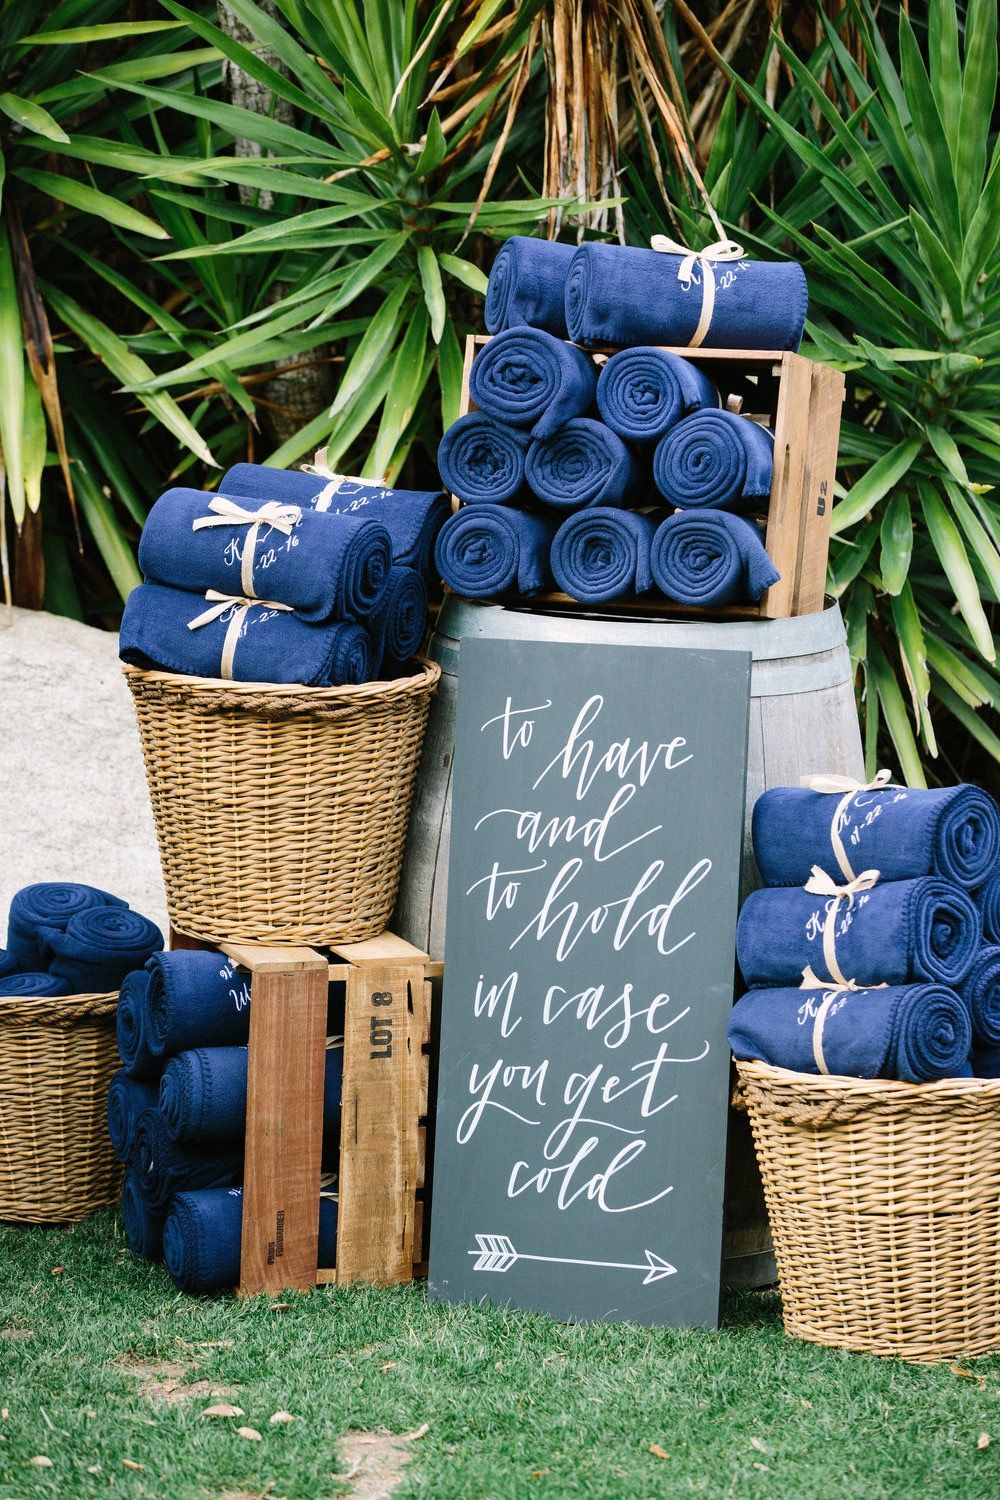 backyard-wedding-hacks-blankets - Backyard-wedding-hacks-blankets Wedding Wedding, Wedding Favors